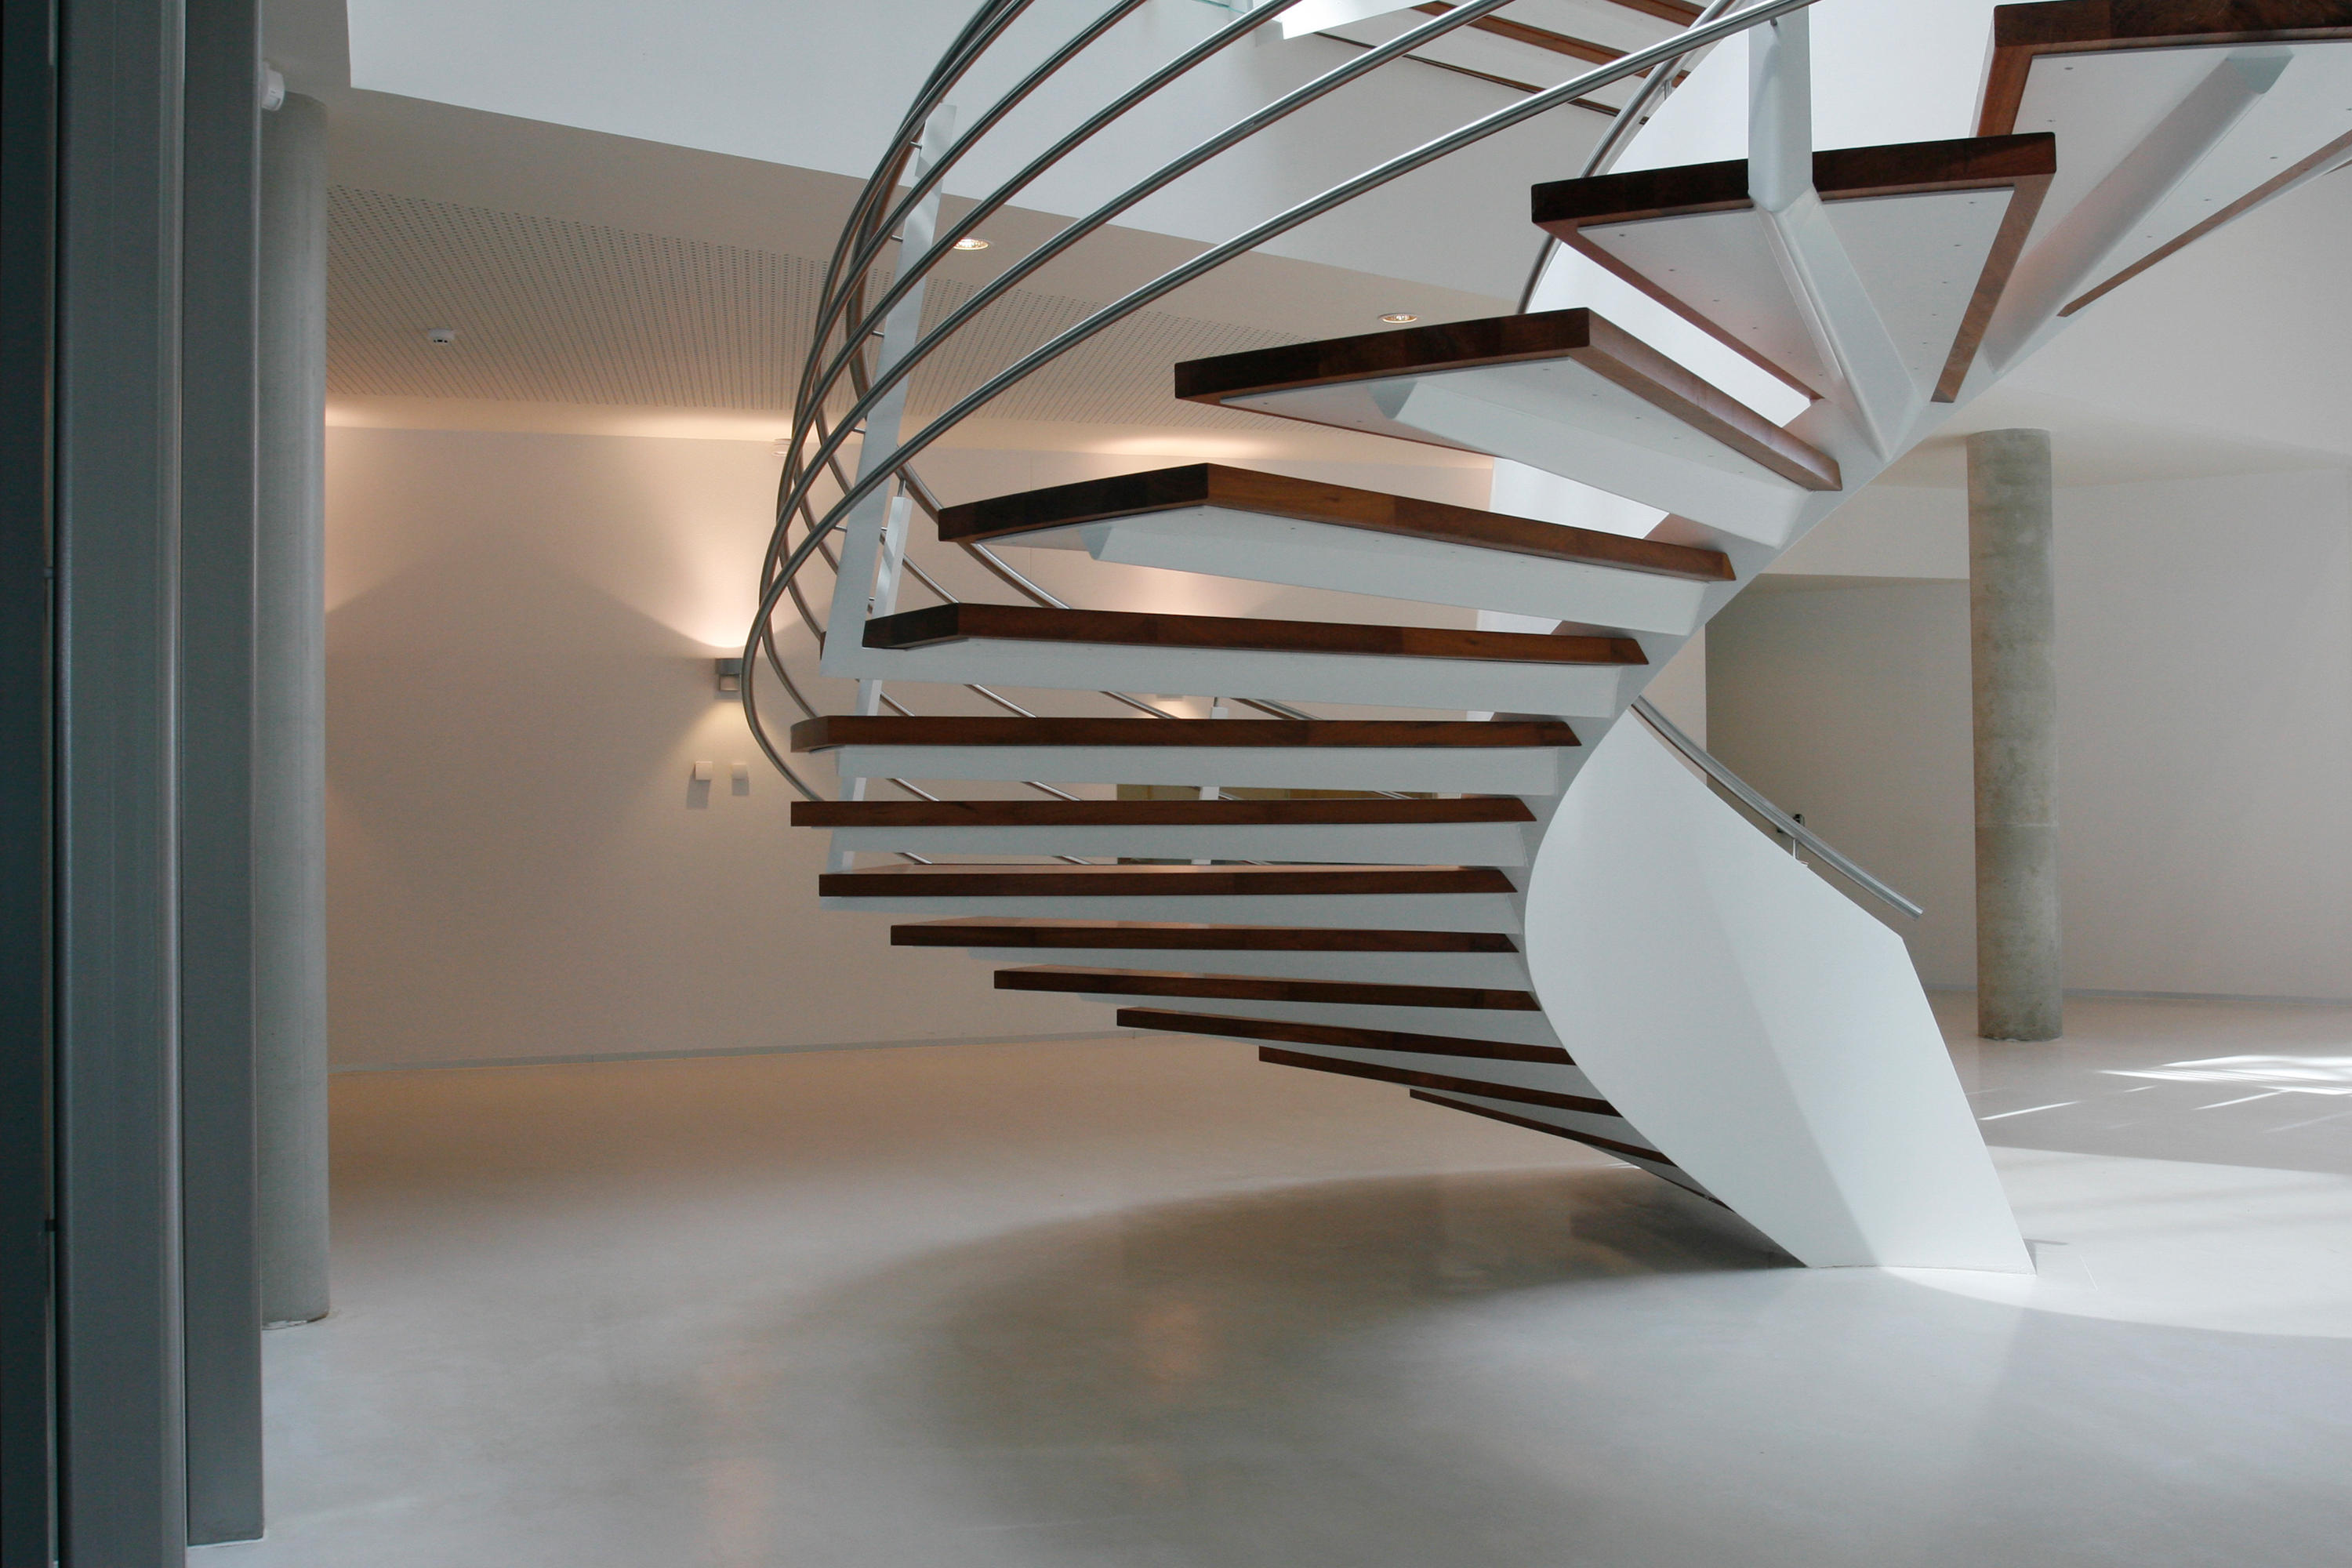 HELICAL STAIRS EBOOK